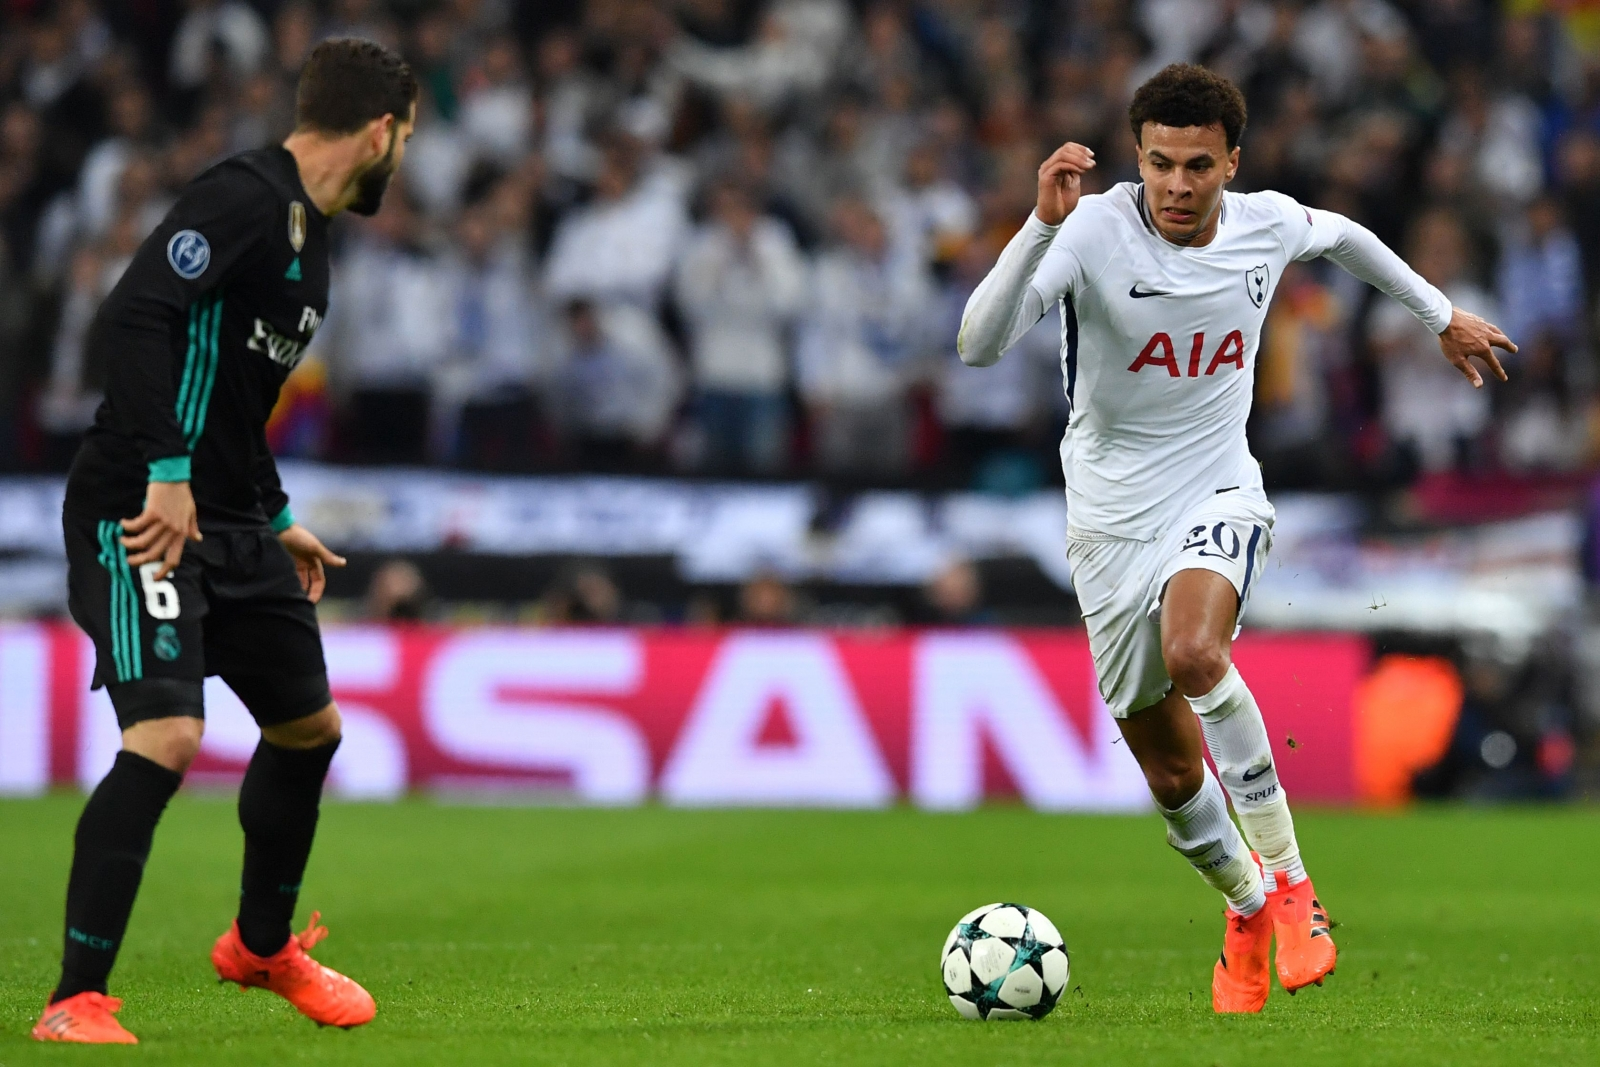 dele-alli-believes-victory-over-real-madrid-is-a-huge-statement-of-intent